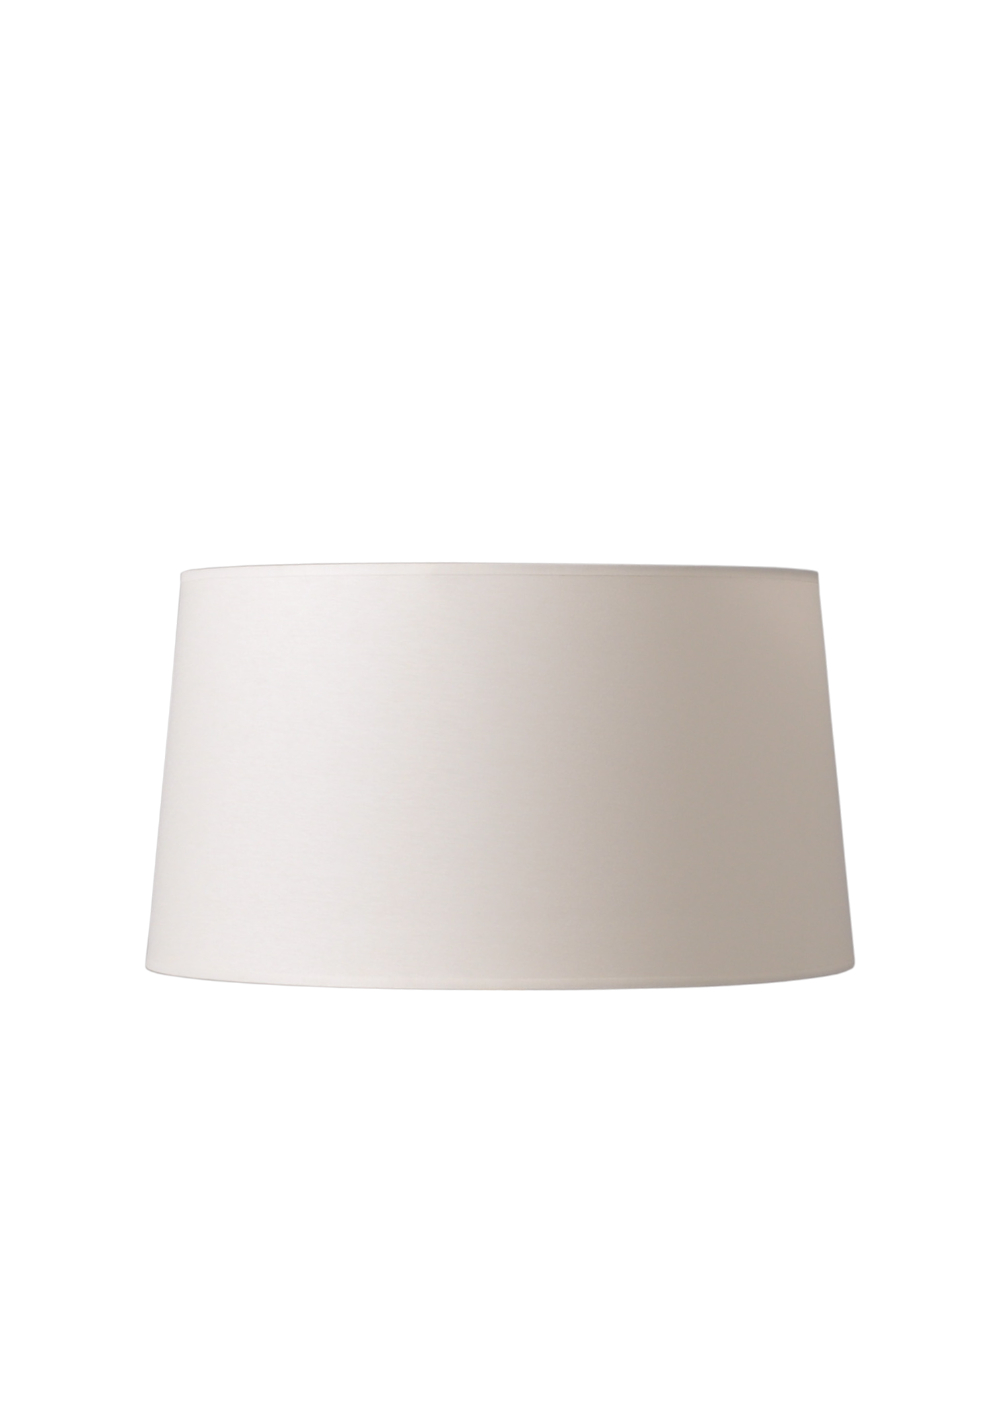 Lampshade Half conical